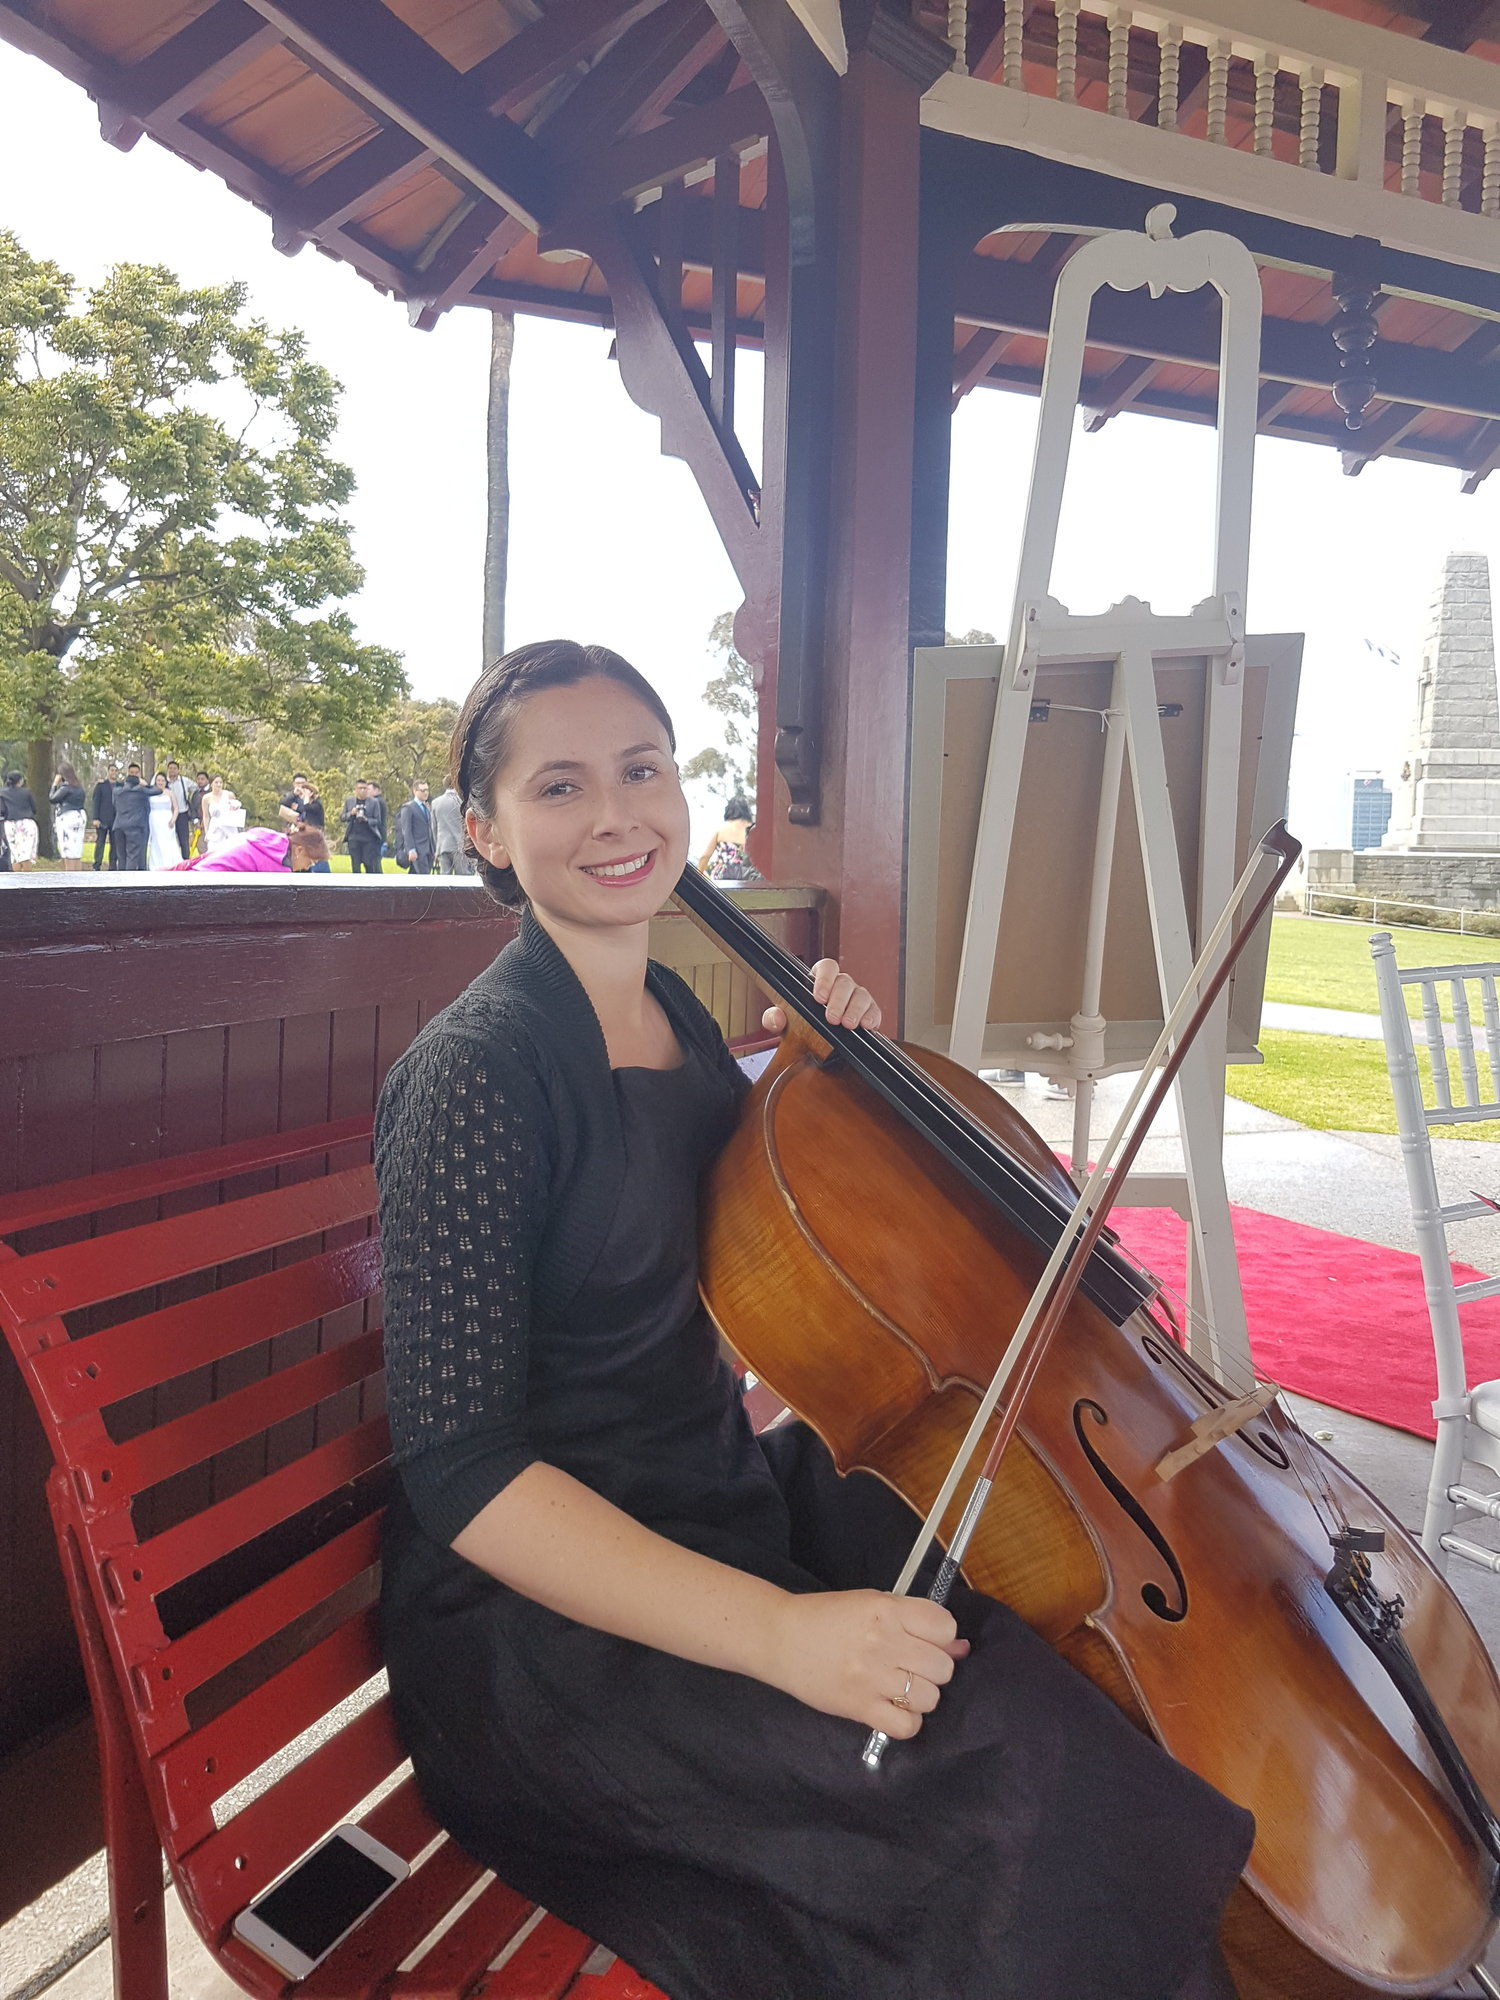 perth-function-string-music-hire-wedding-riverside-musiciansperth-function-string-music-hire-wedding-riverside-musicians-classical-contemporary-cello-cellist